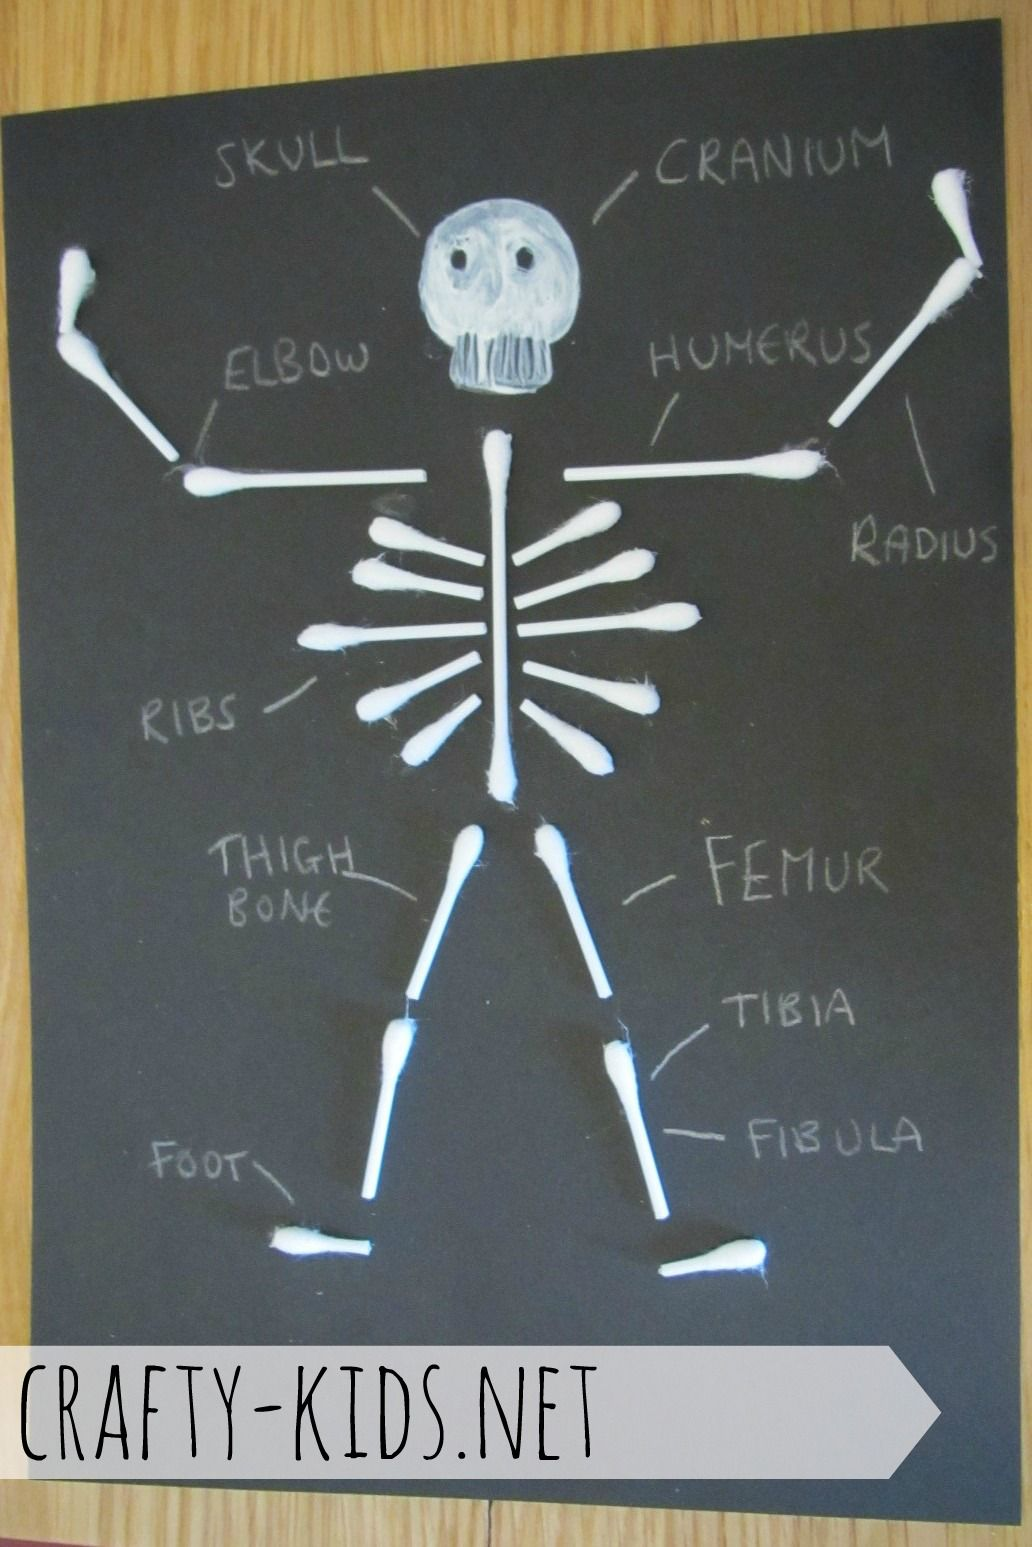 Crafty Kids Silly Skeleton An Education Craft To Learn